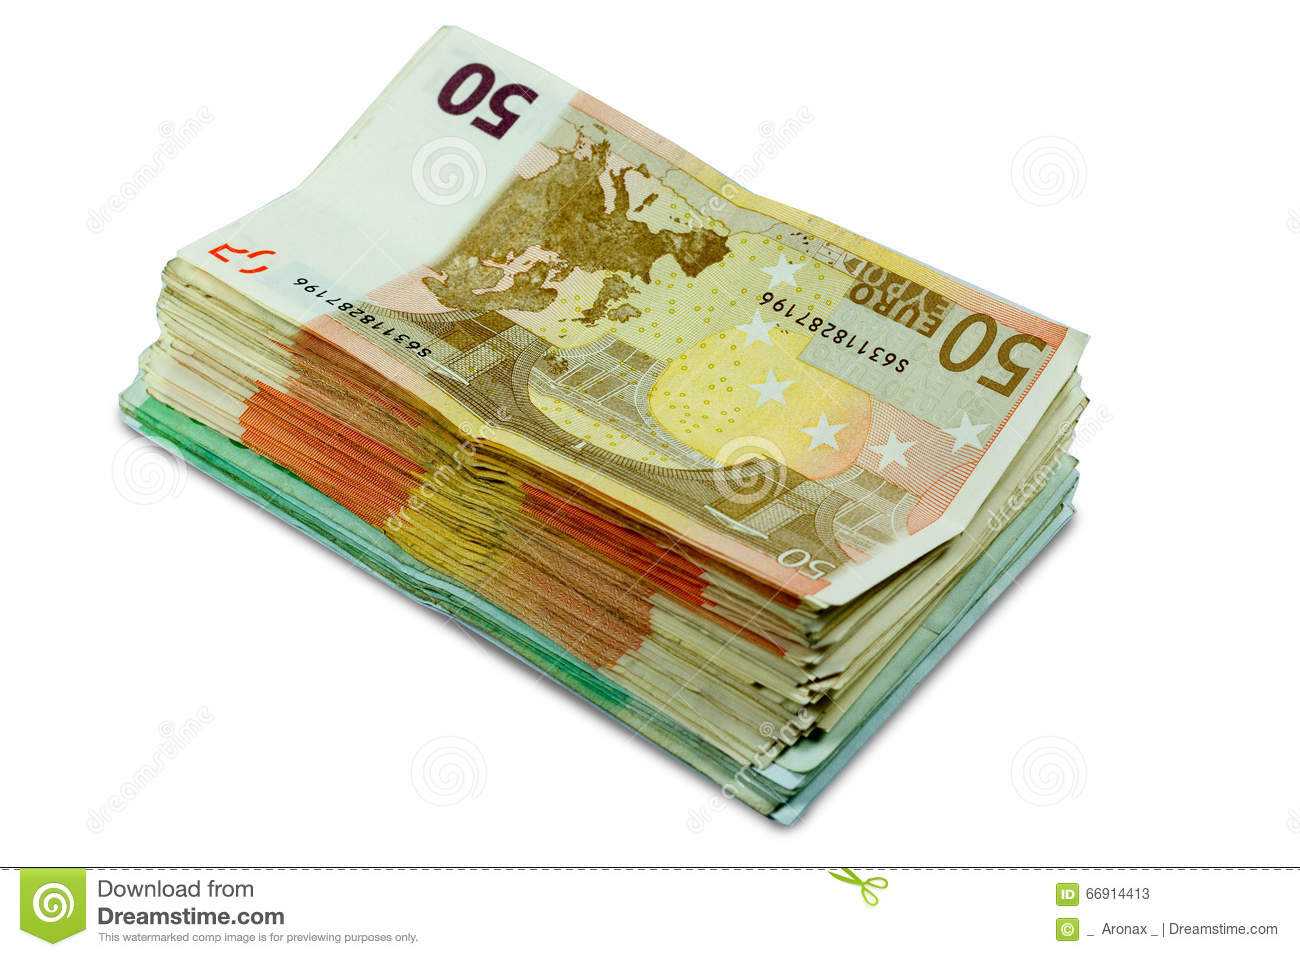 euro money banknotes stacked 50 and 100 euro bills stock image image 66914413. Black Bedroom Furniture Sets. Home Design Ideas